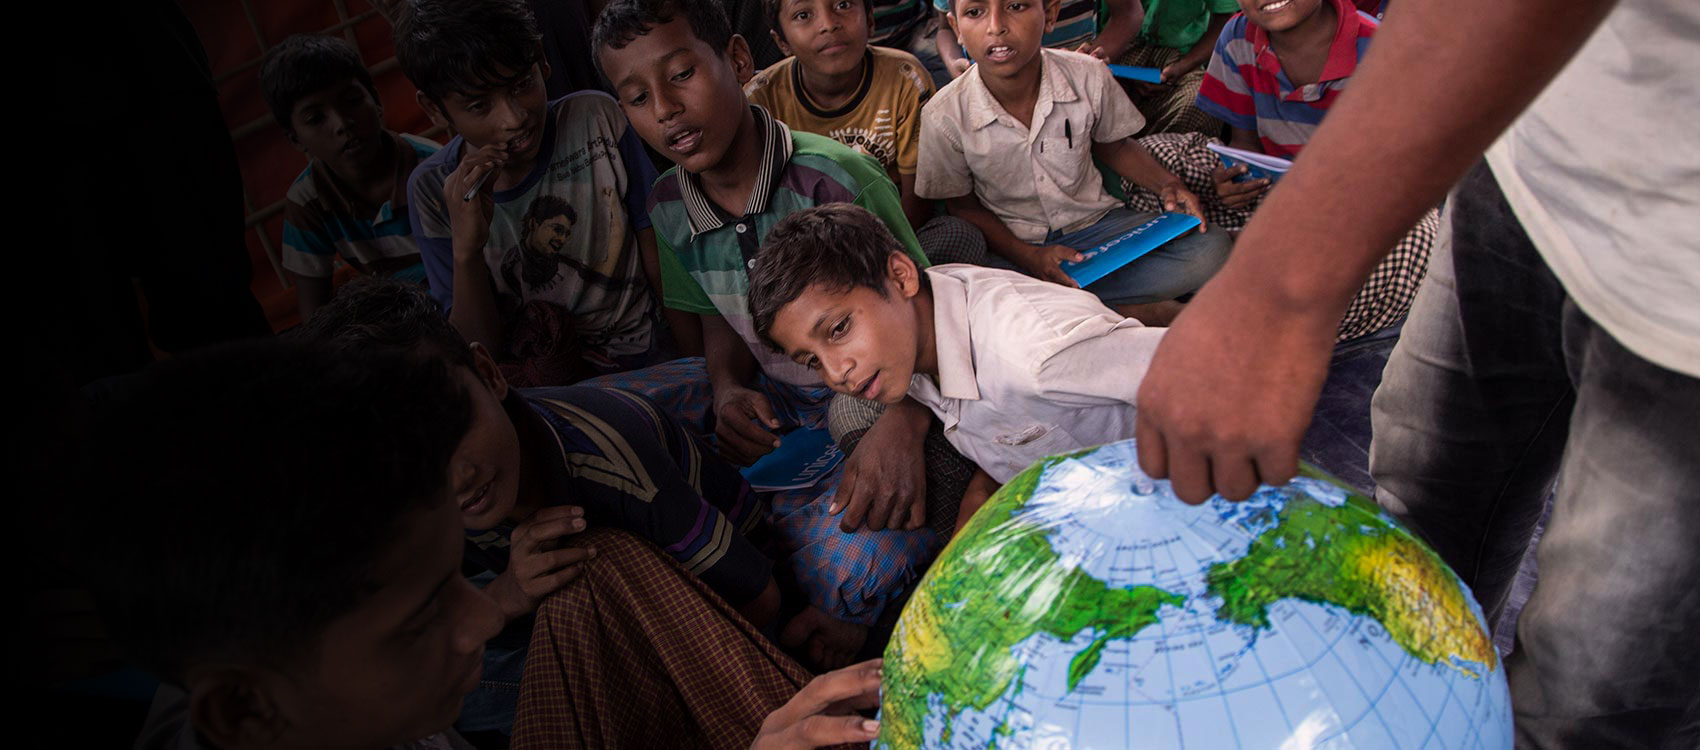 © UNICEF/UN0141027/LeMoyne/Bangladesh- Students look at an inflatable globe, part of the educational supplies contained in a School-in-a-Box, at a new Transitional Learning Centre in the Uchiprang refugee camp, near Cox's Bazar, Bangladesh